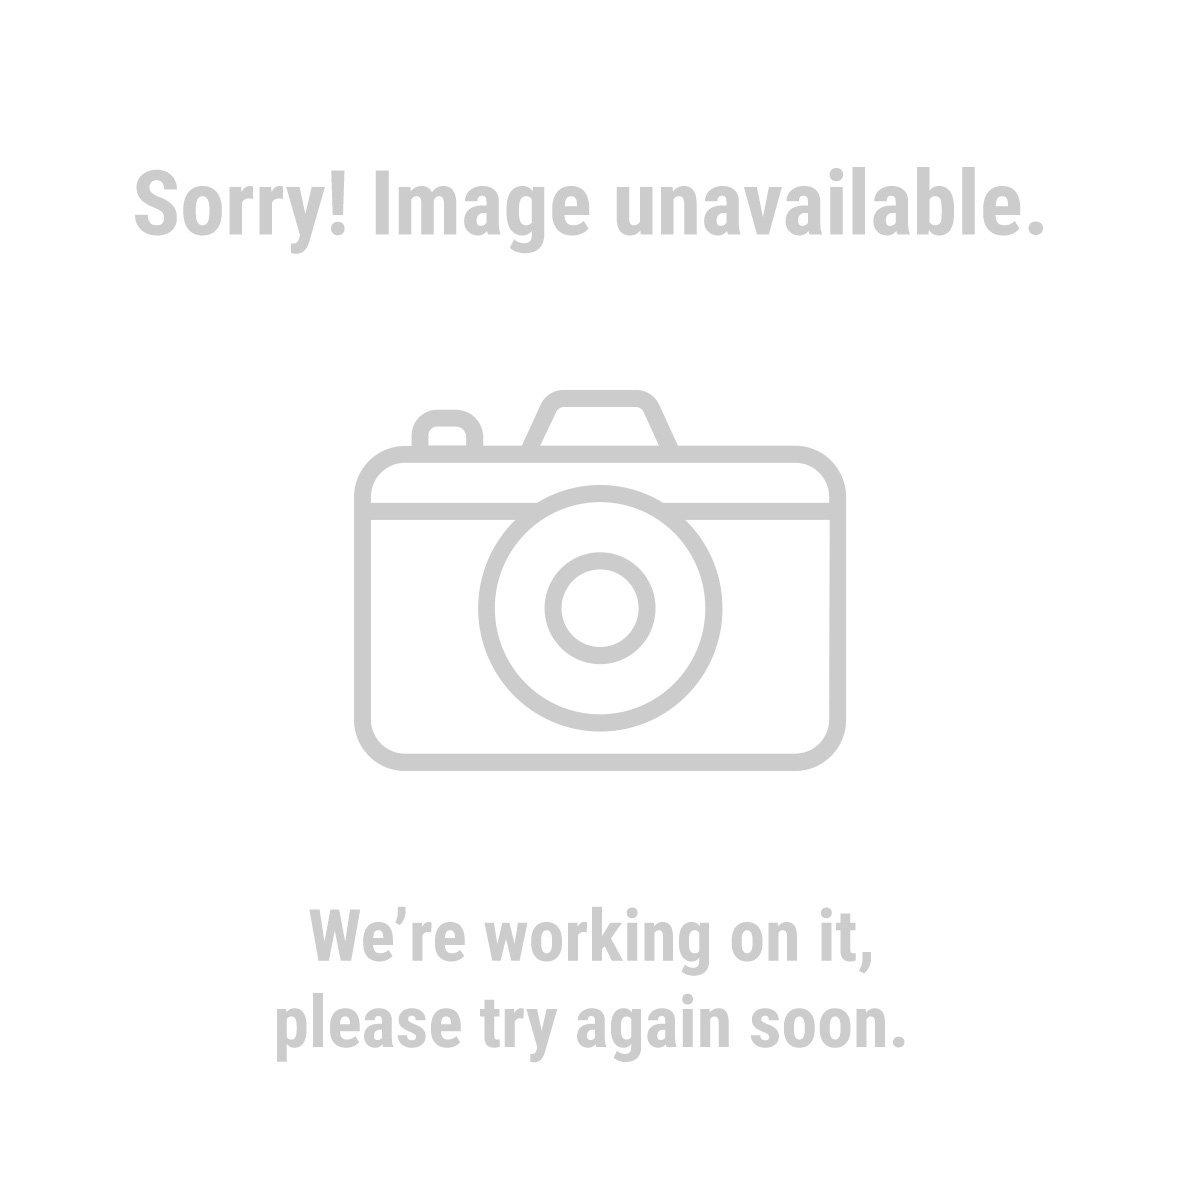 U.S. General 5770 24 In. x 36 In.Two Shelf  Steel Service Cart